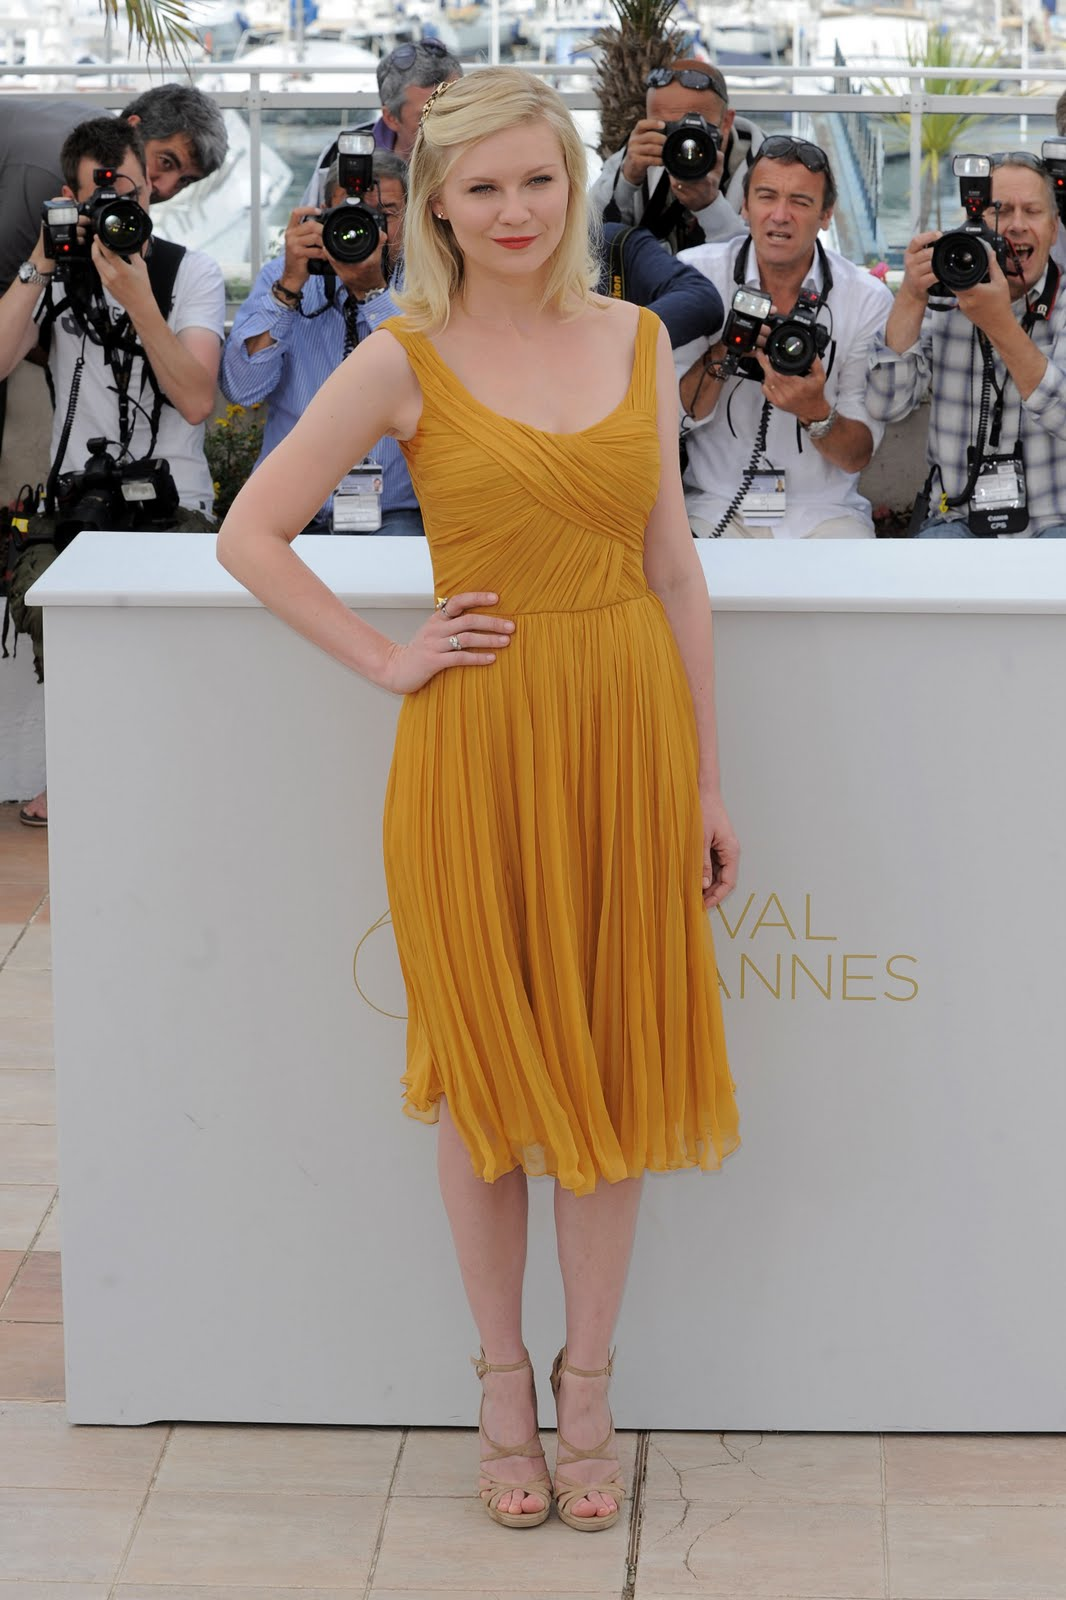 http://1.bp.blogspot.com/-uDyoUwE7j5A/Tdpzrr1ypQI/AAAAAAAAI94/k4TH3RTvuSM/s1600/26092_Preppie_Kirsten_Dunst_at_Melancholia_photocall_at_the_64th_Cannes_Film_Festival_15_122_62lo.jpg